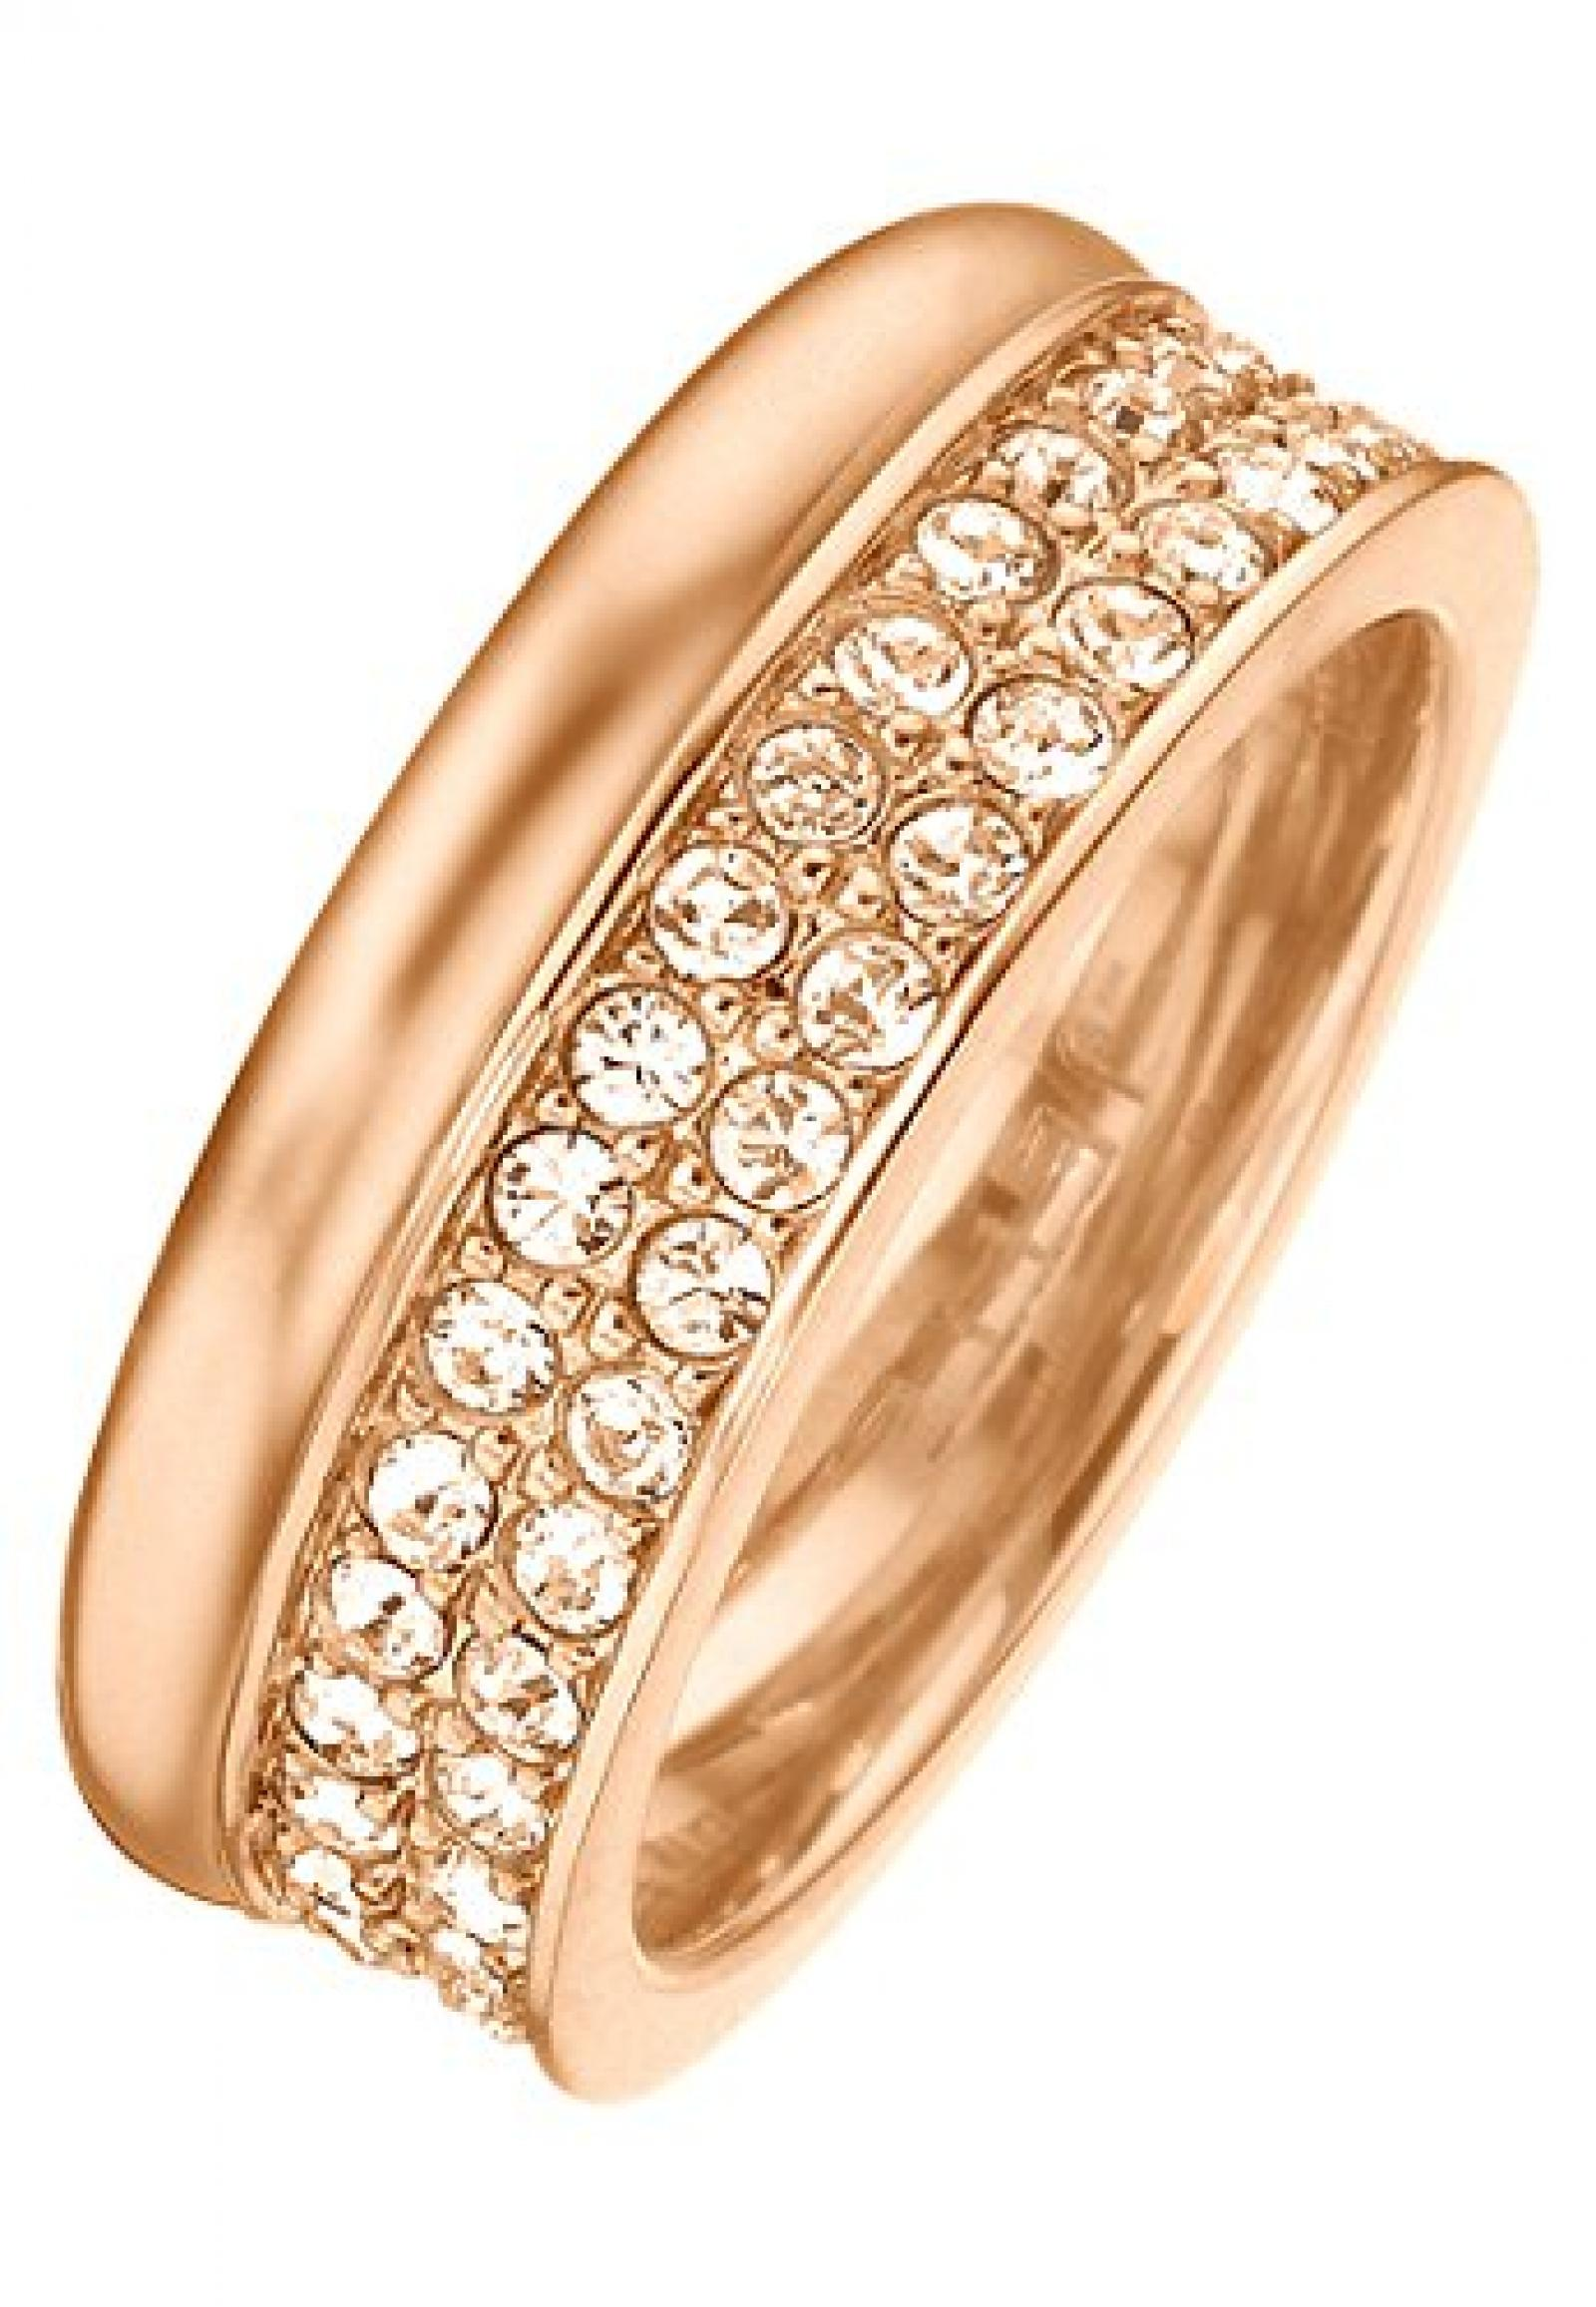 JETTE Magic Passion Damen-Ring Jette Silber Metall 70 Kristall (rosé)